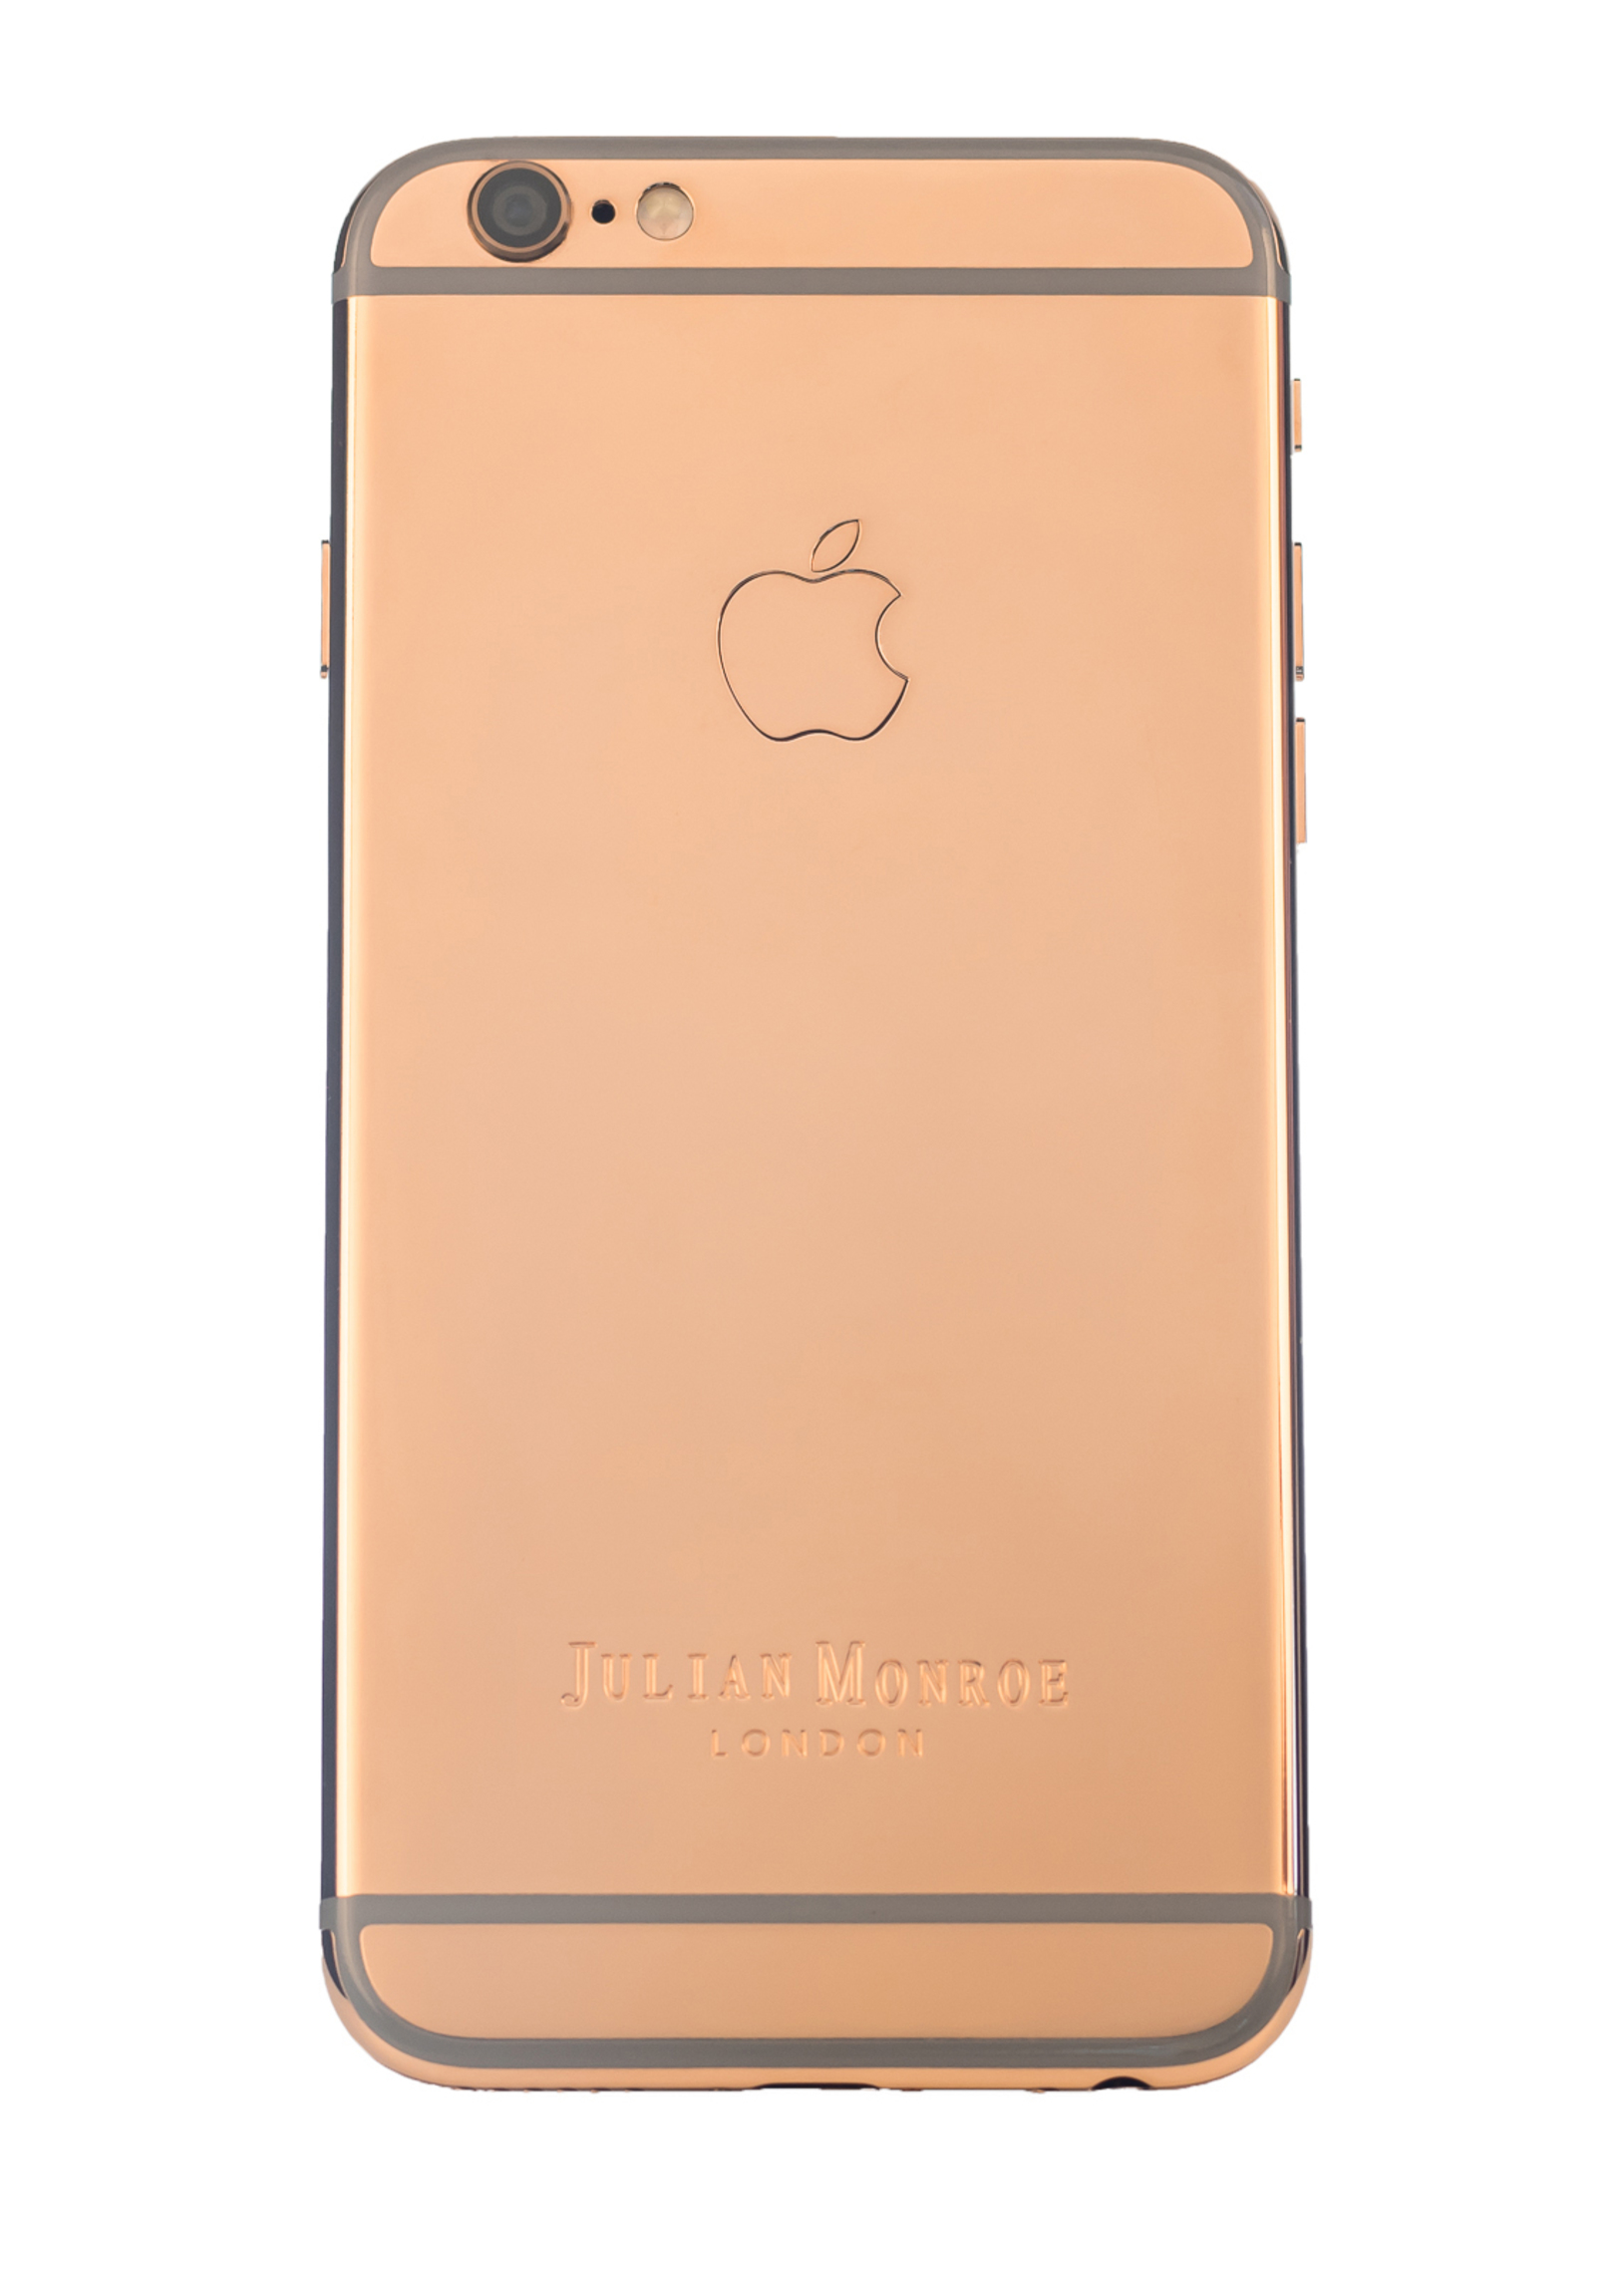 18ct Rose Gold iPhone 6s (By Julian Monroe London)